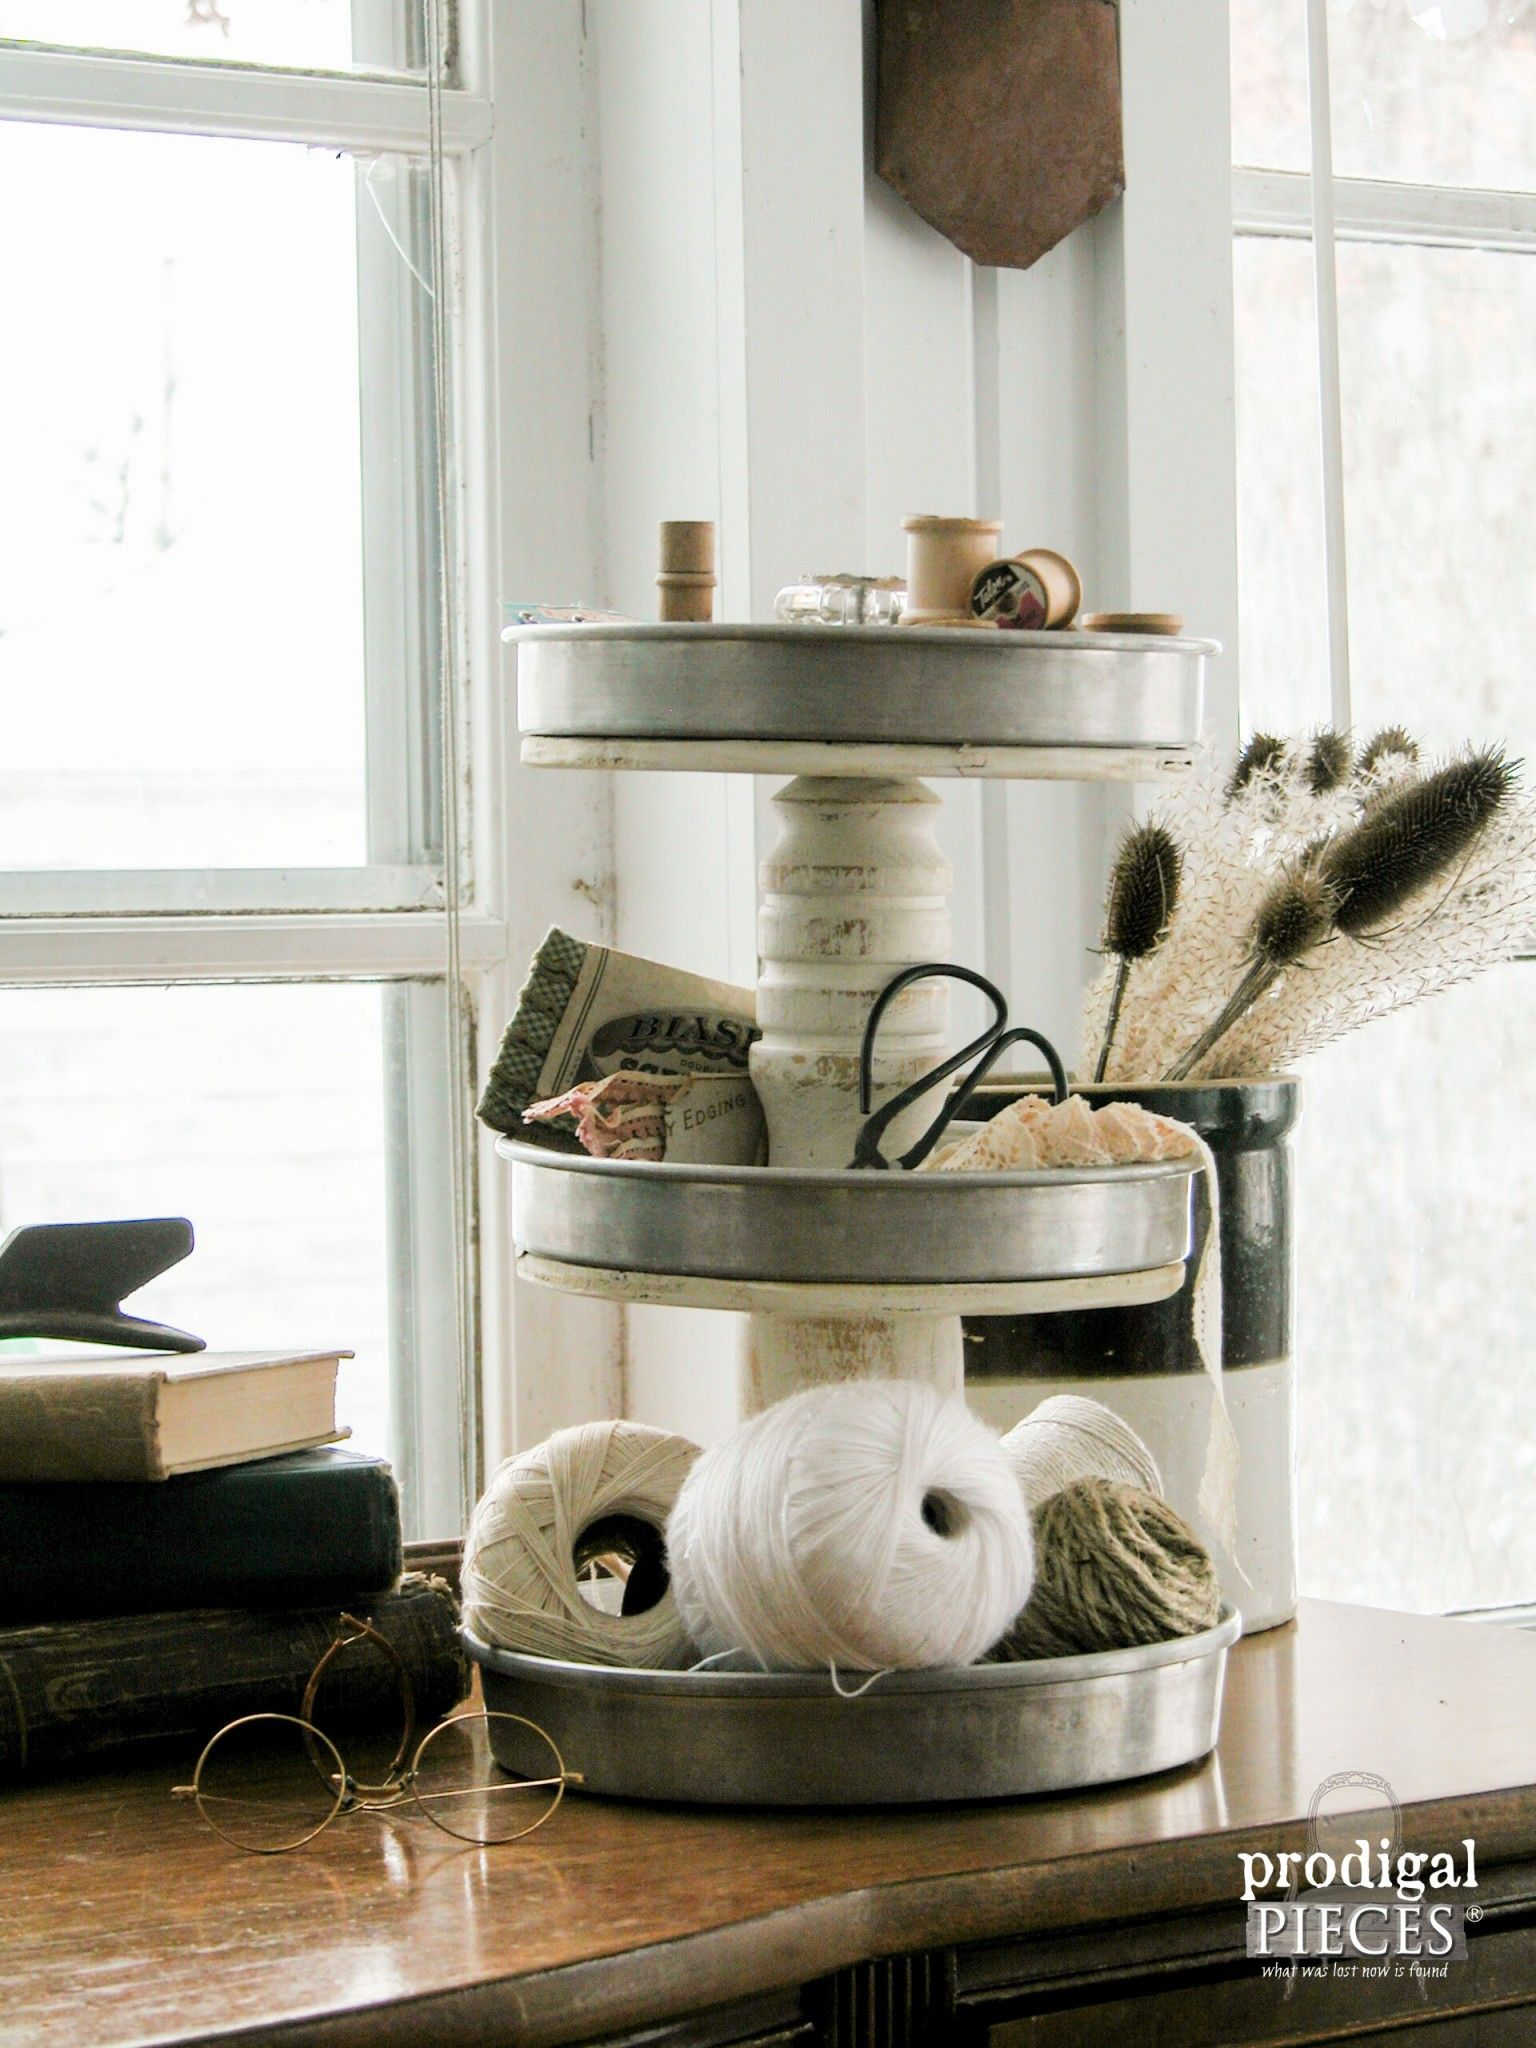 Top 29 Diy Ideas Adding Rustic Farmhouse Feels To Kitchen: DIY Tiered Stand From Repurposed Junk